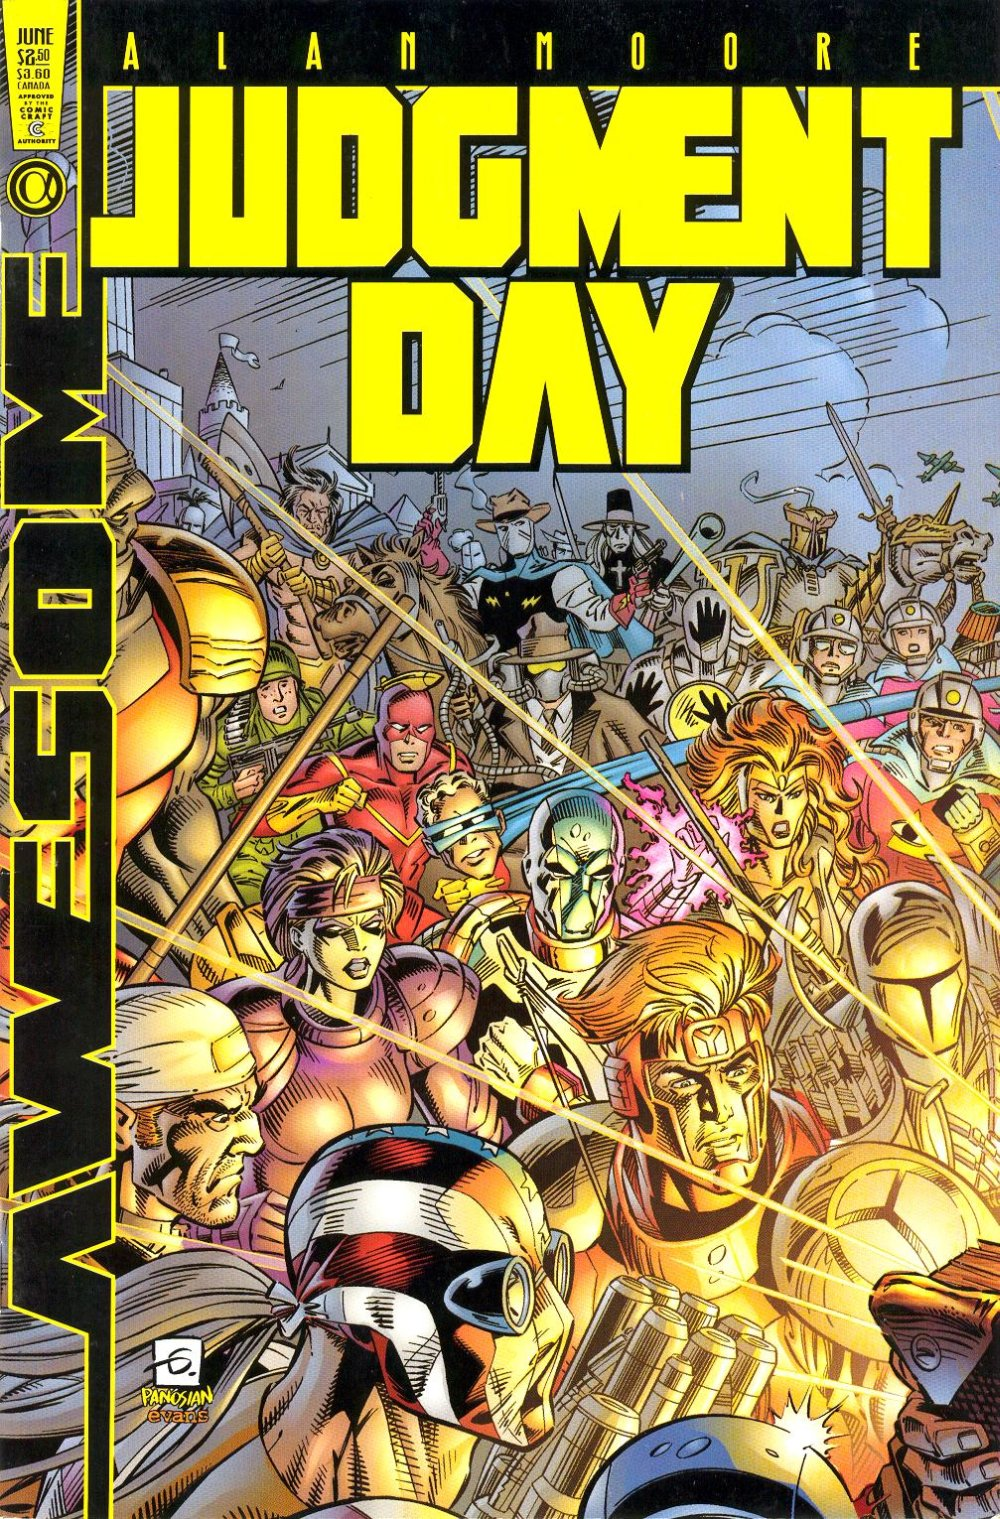 Judgment Day [Awesome] Mini 1 0001.jpg